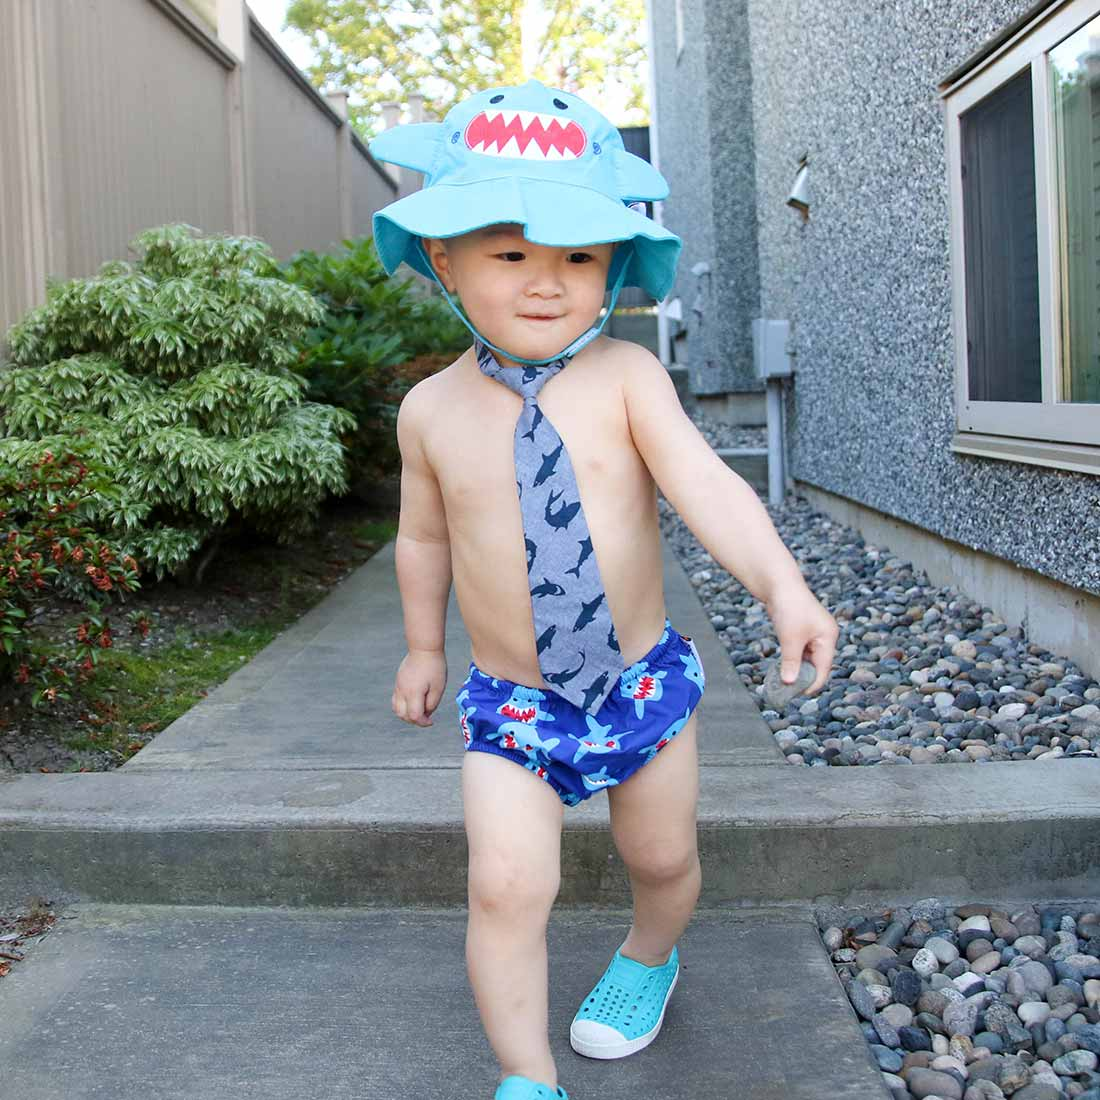 b3fcc1d6c7a Newborn Baby Toddler UPF50+ Swim Diaper   Sunhat Set for Pool   Beach